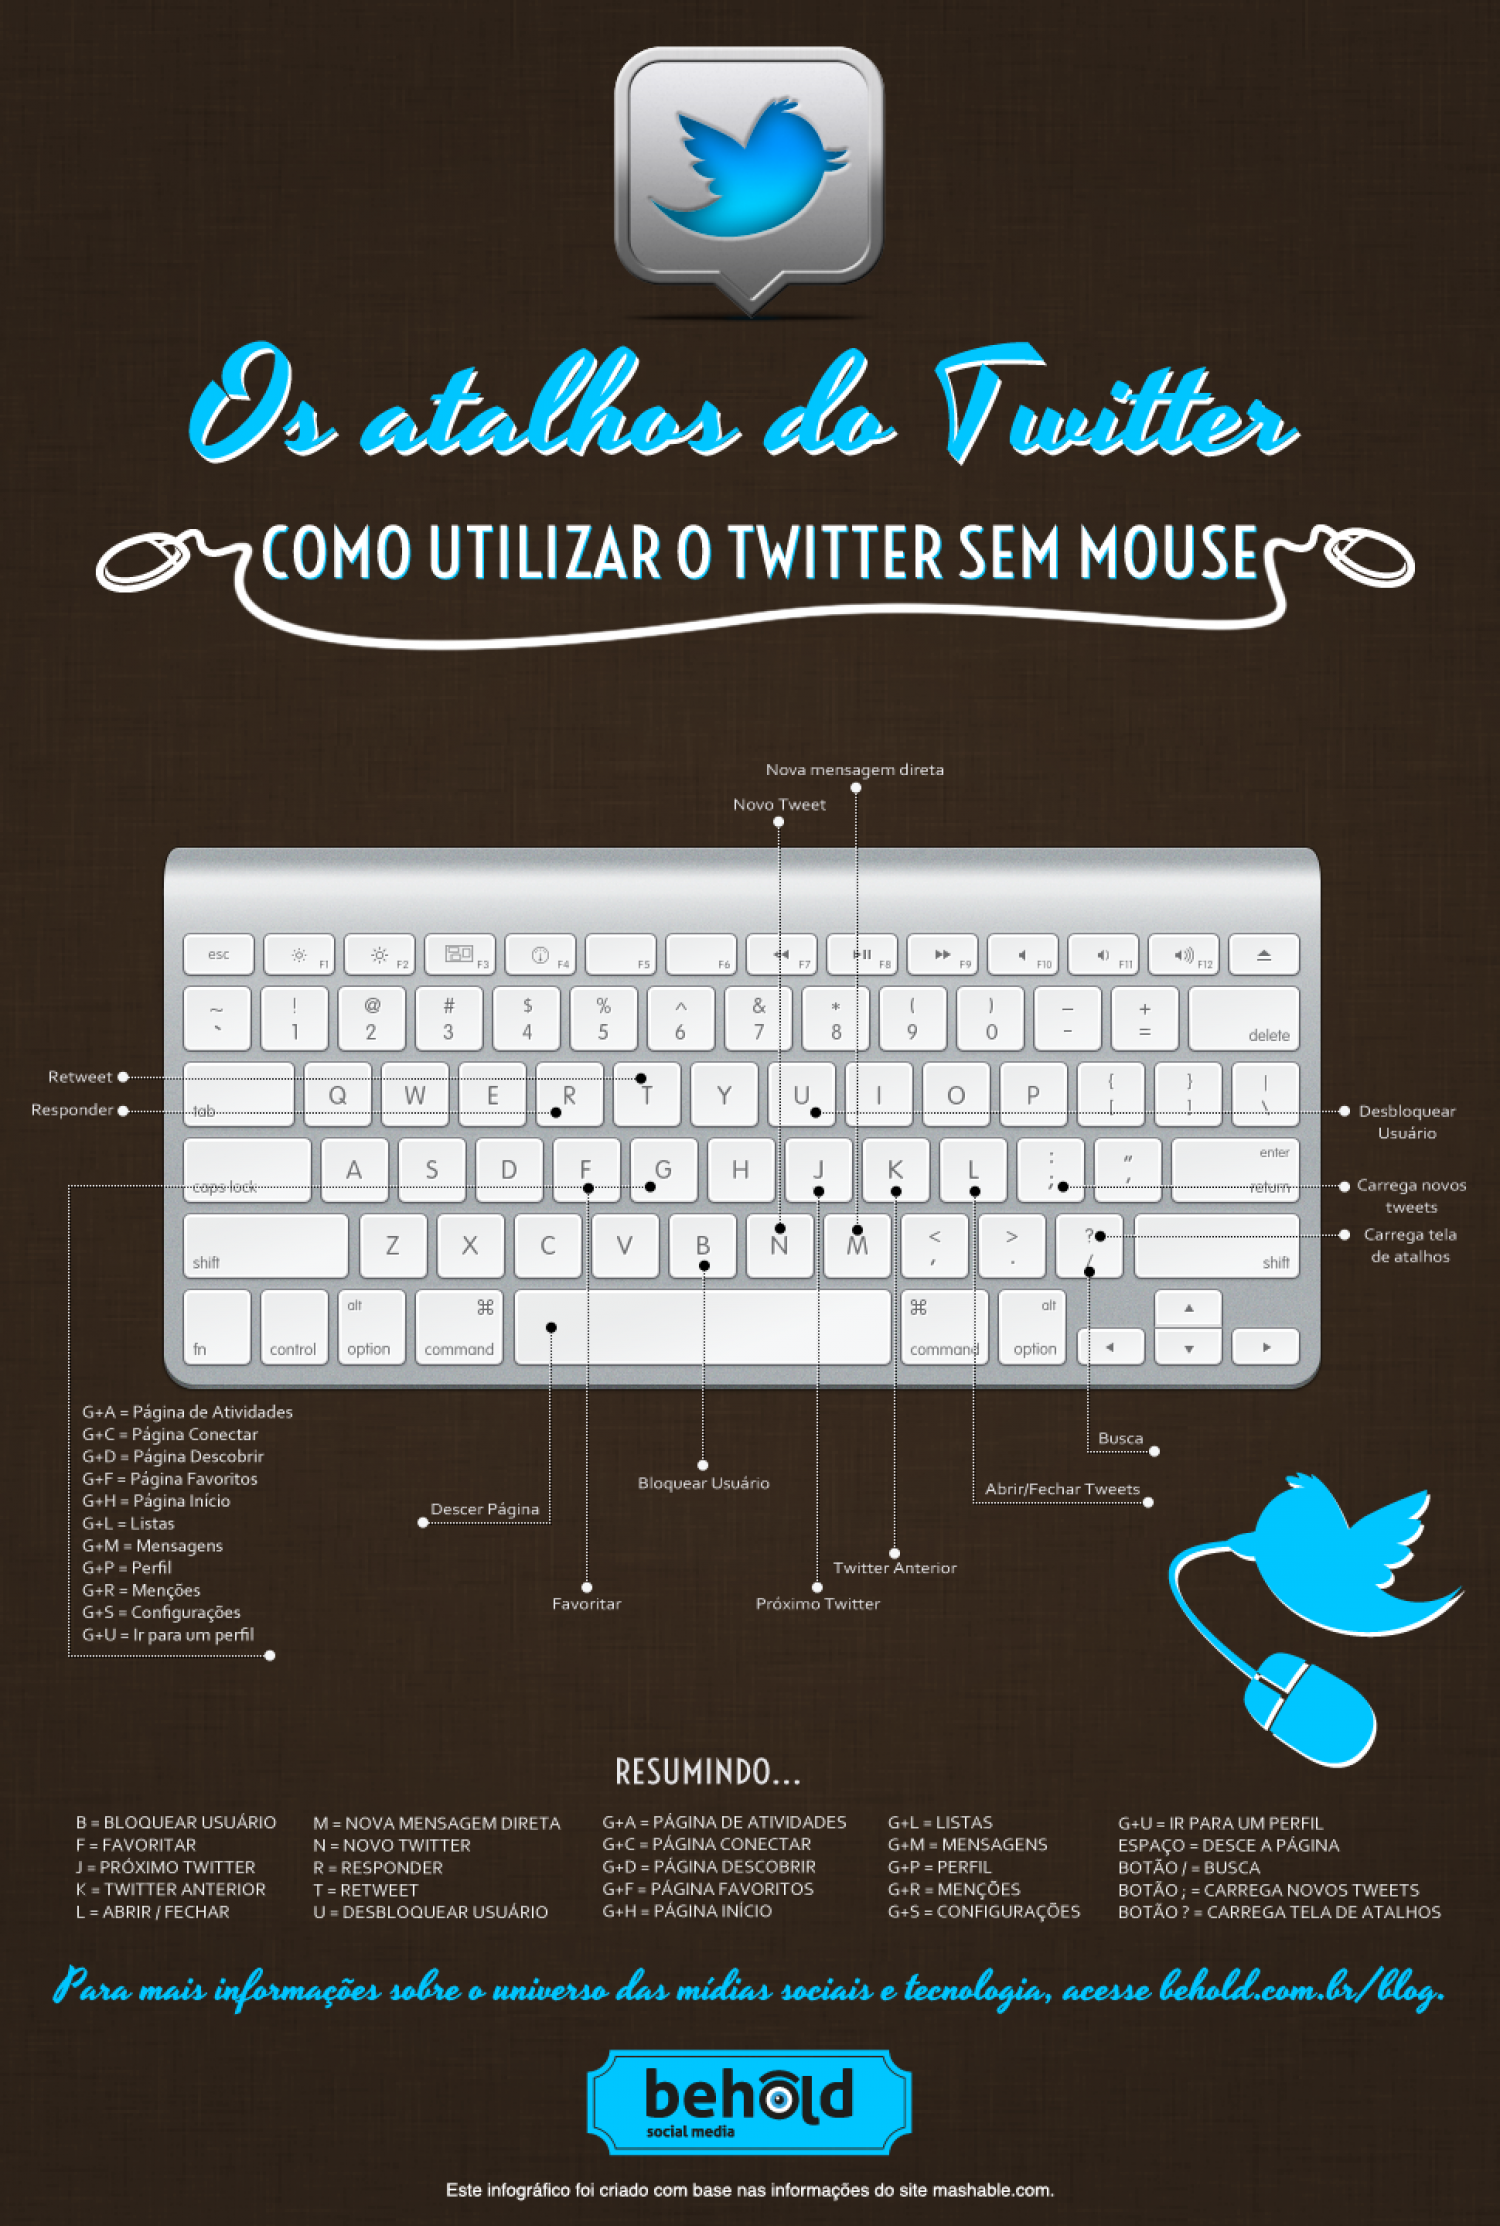 The twitter shortcuts Infographic